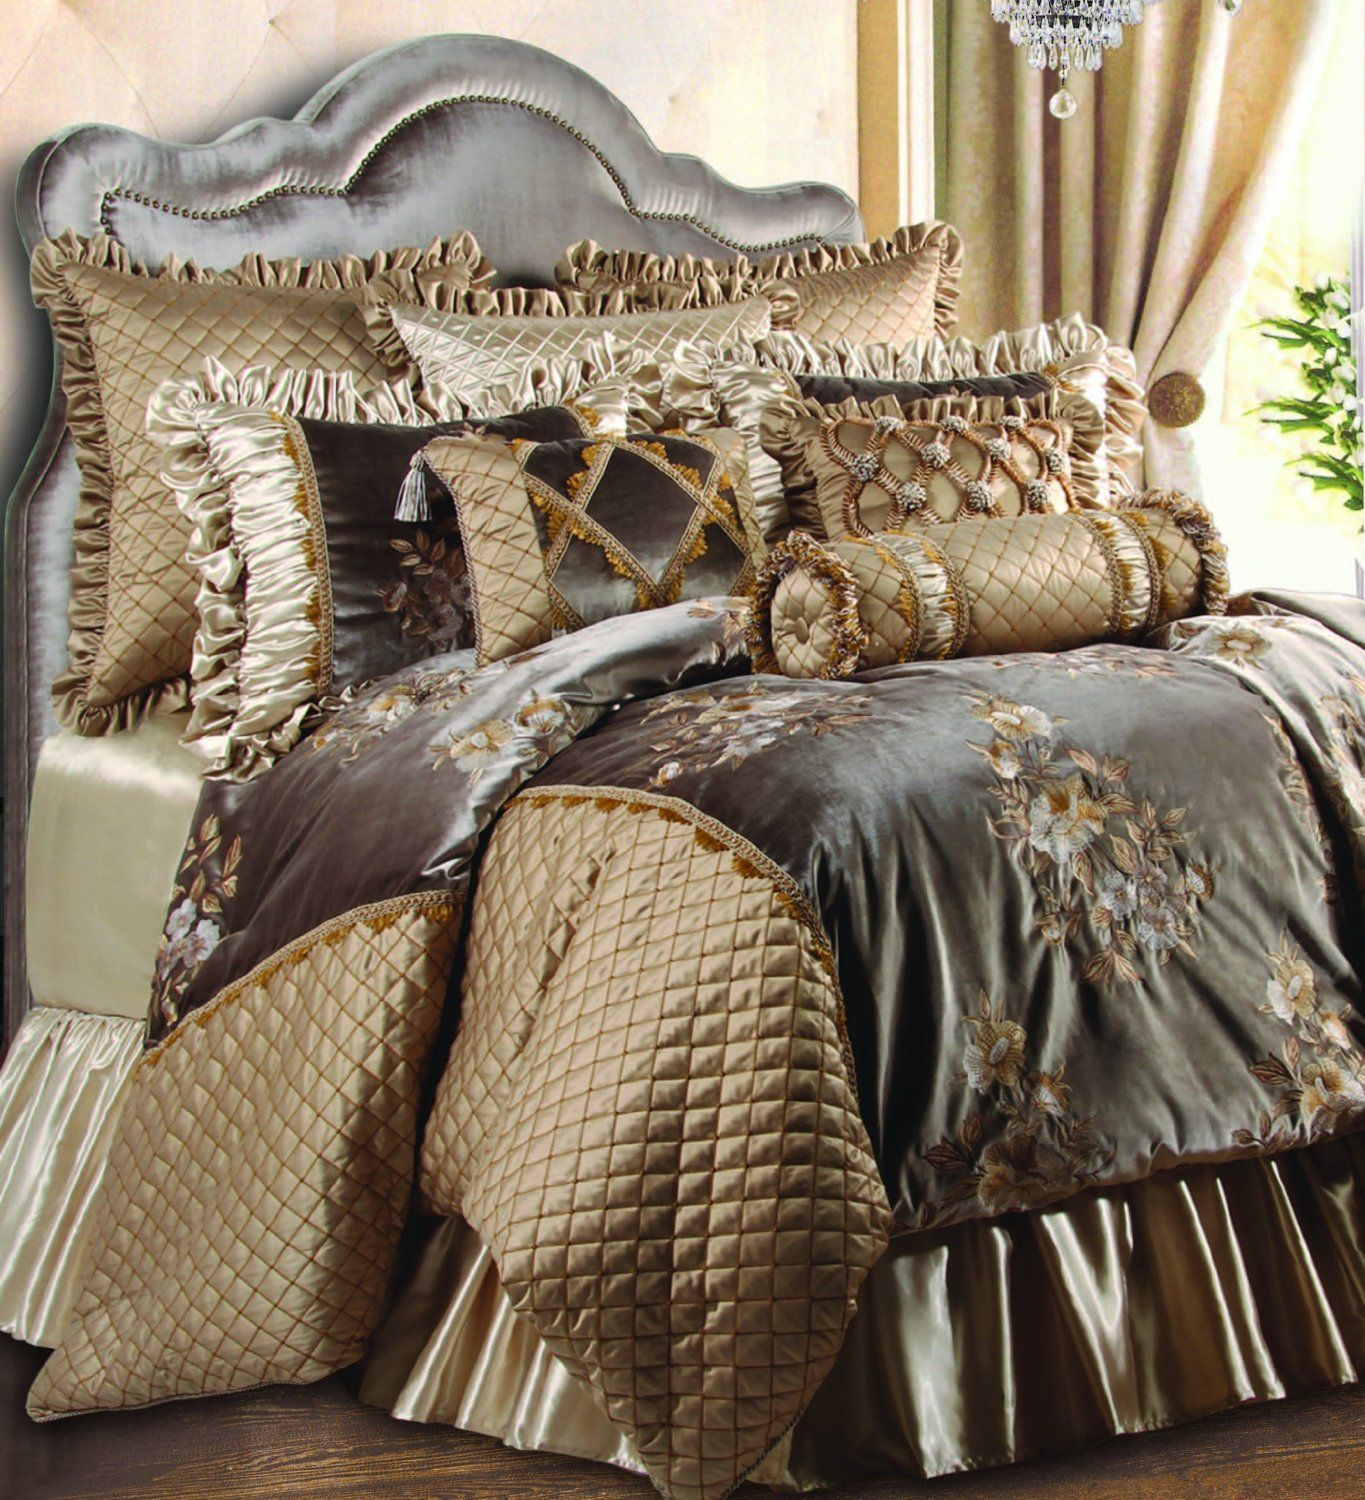 Luxury Embroidered Velvet Gold And Brown Hue Bedding Sets In King Size Captivating Luxury King Comforter Bedroom